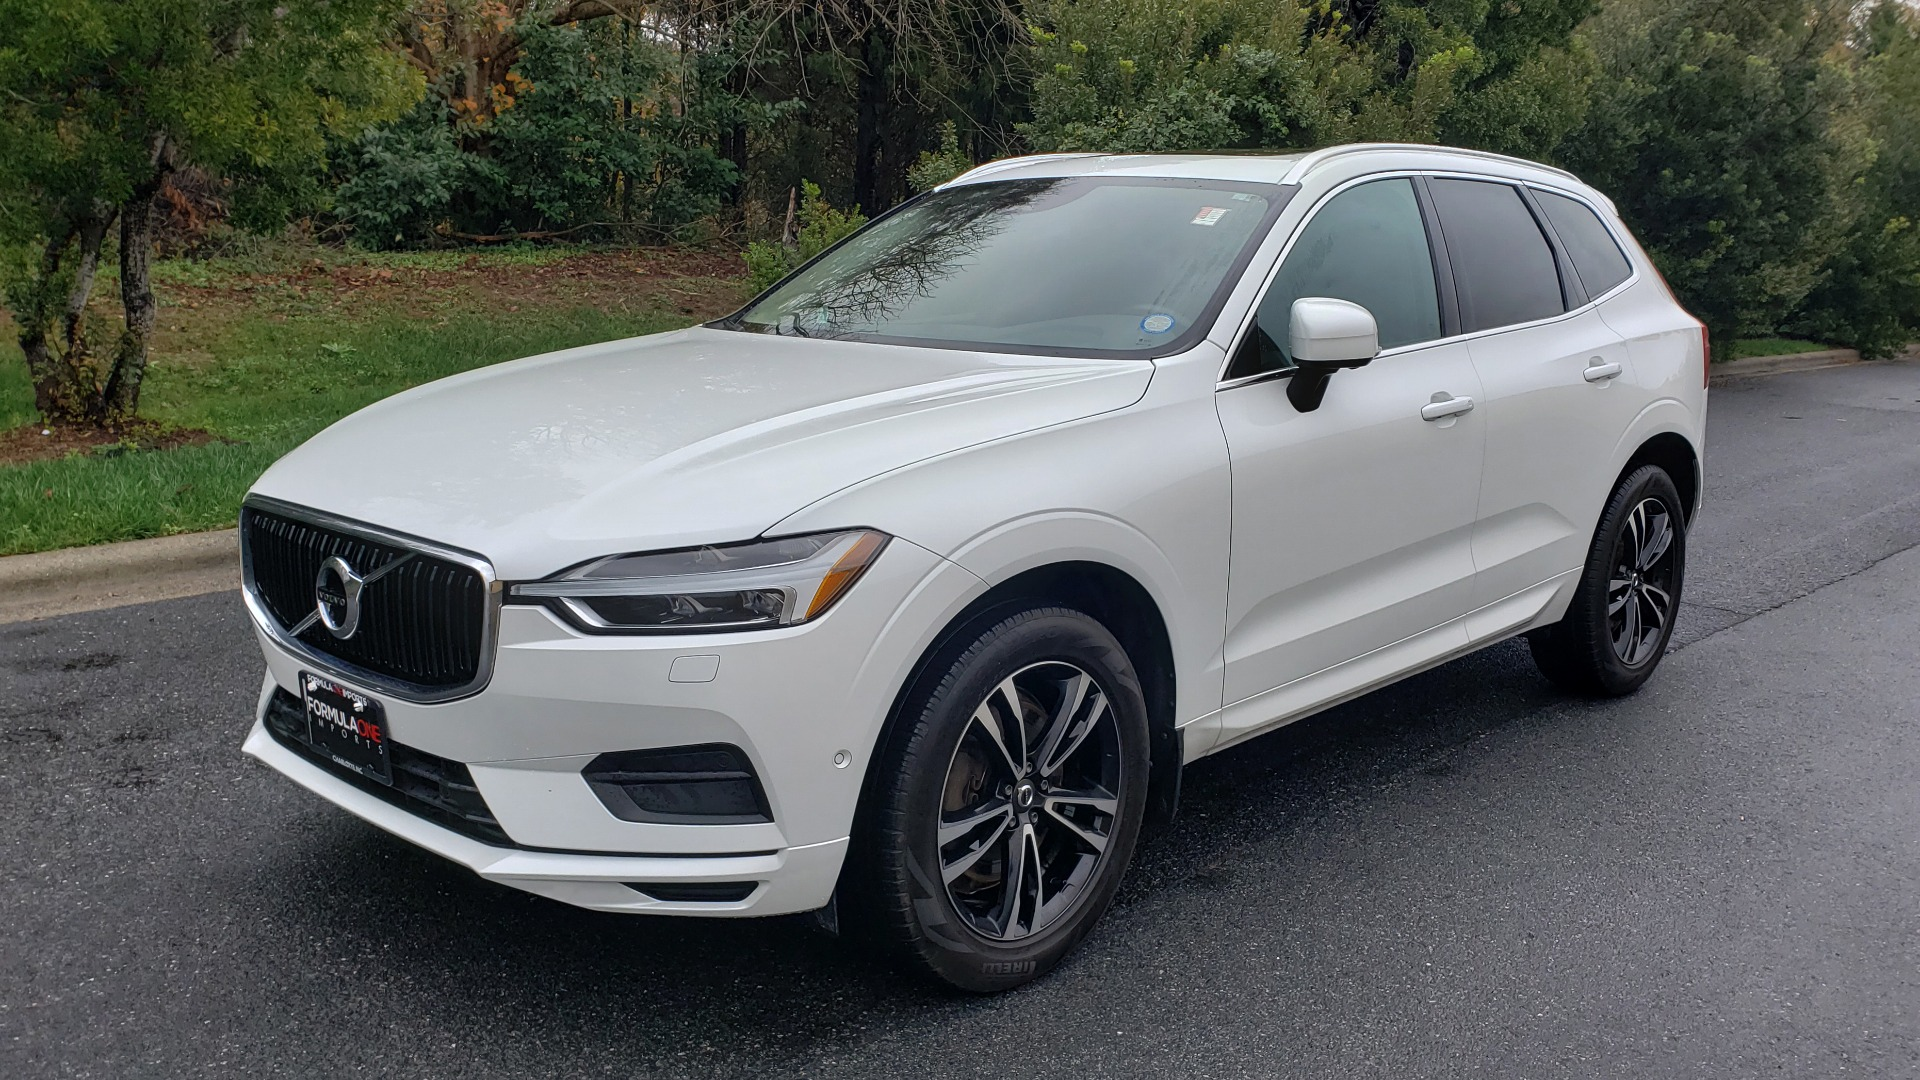 Used 2018 Volvo XC60 MOMENTUM AWD / NAV / SUNROOF / LKA / BLIS / PRK ASST for sale Sold at Formula Imports in Charlotte NC 28227 1